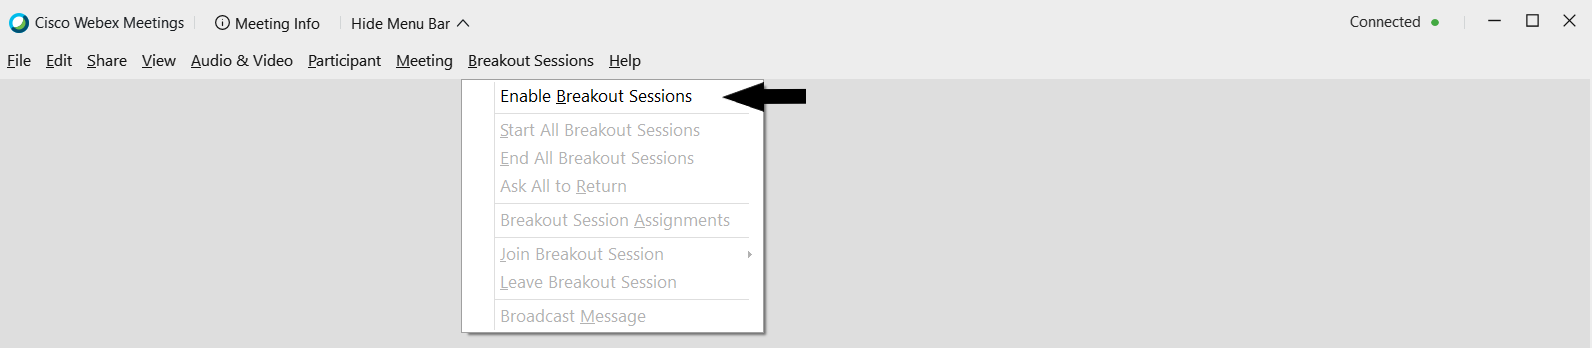 WebEx Menu showing enable breakout session